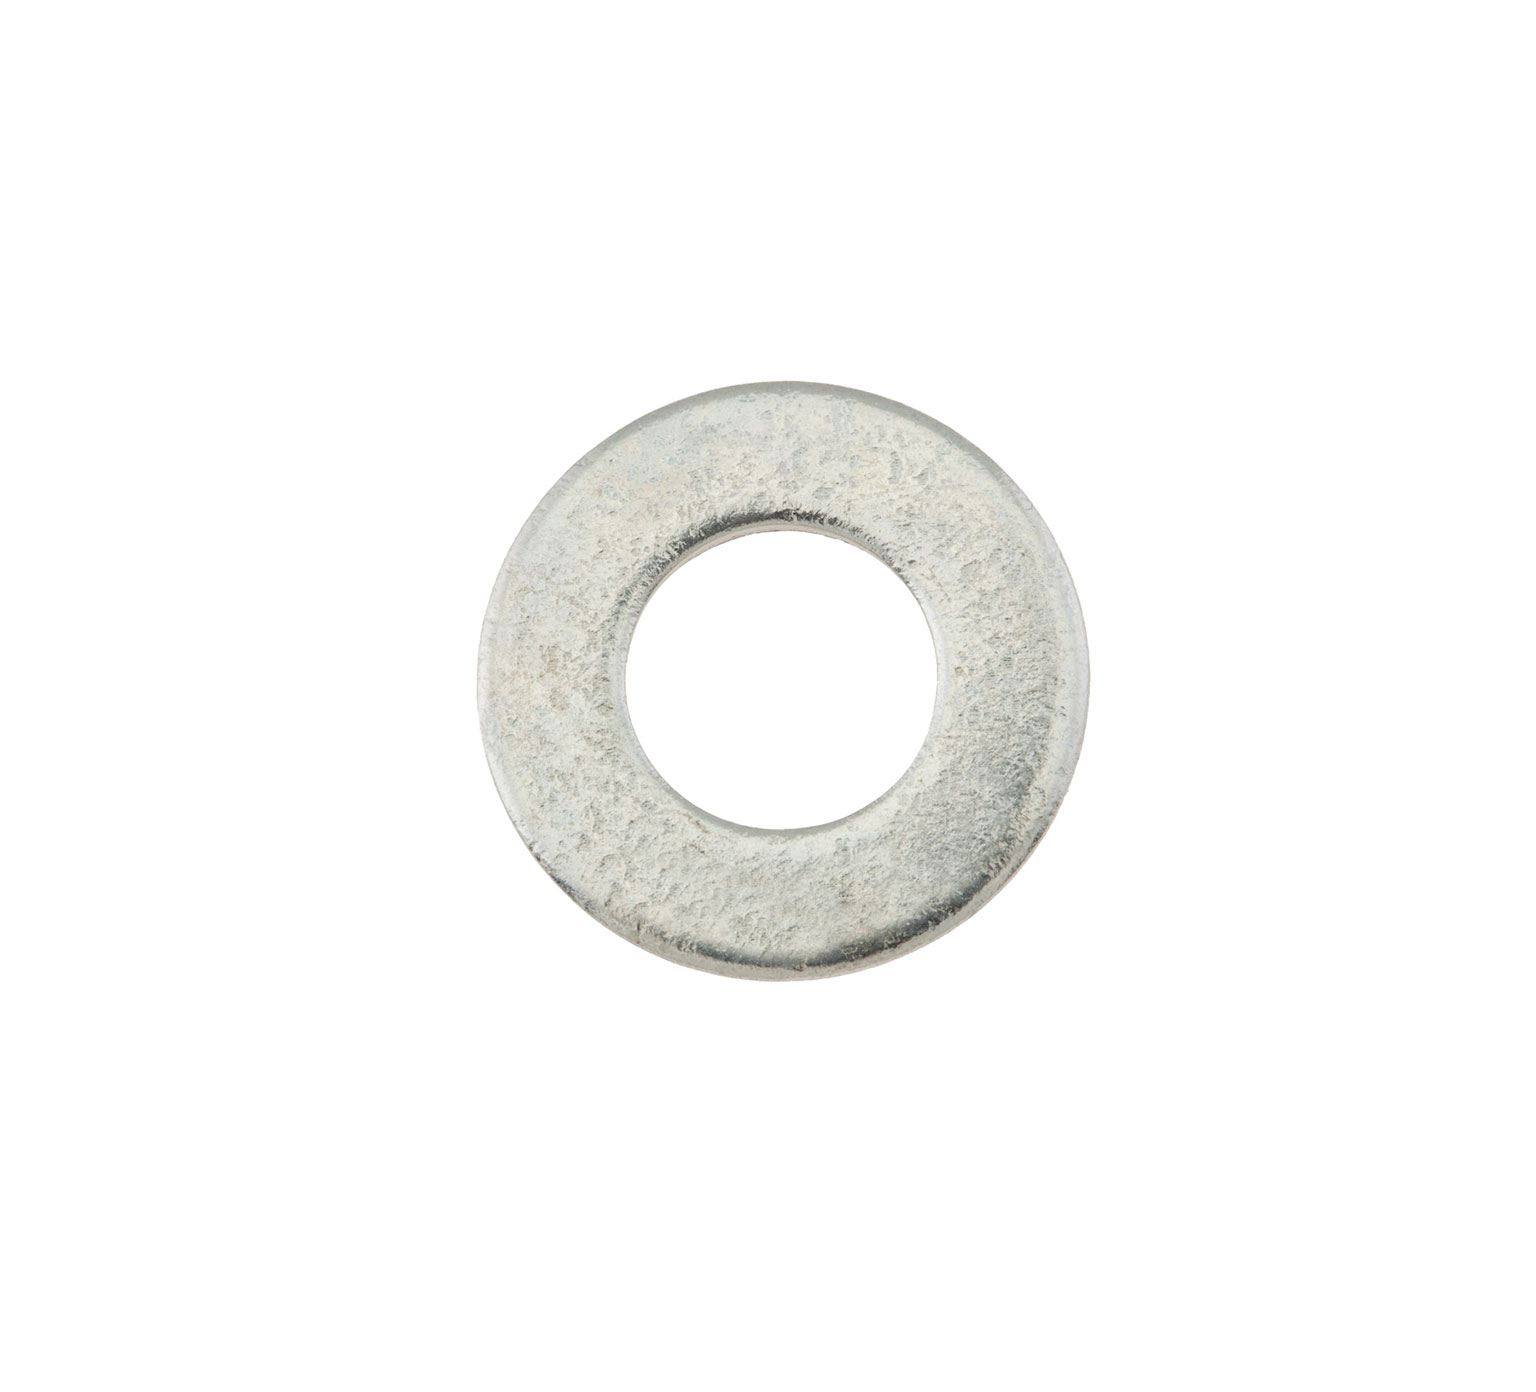 32486 Steel Flat Washer - 1.062 x 0.095 in alt 1